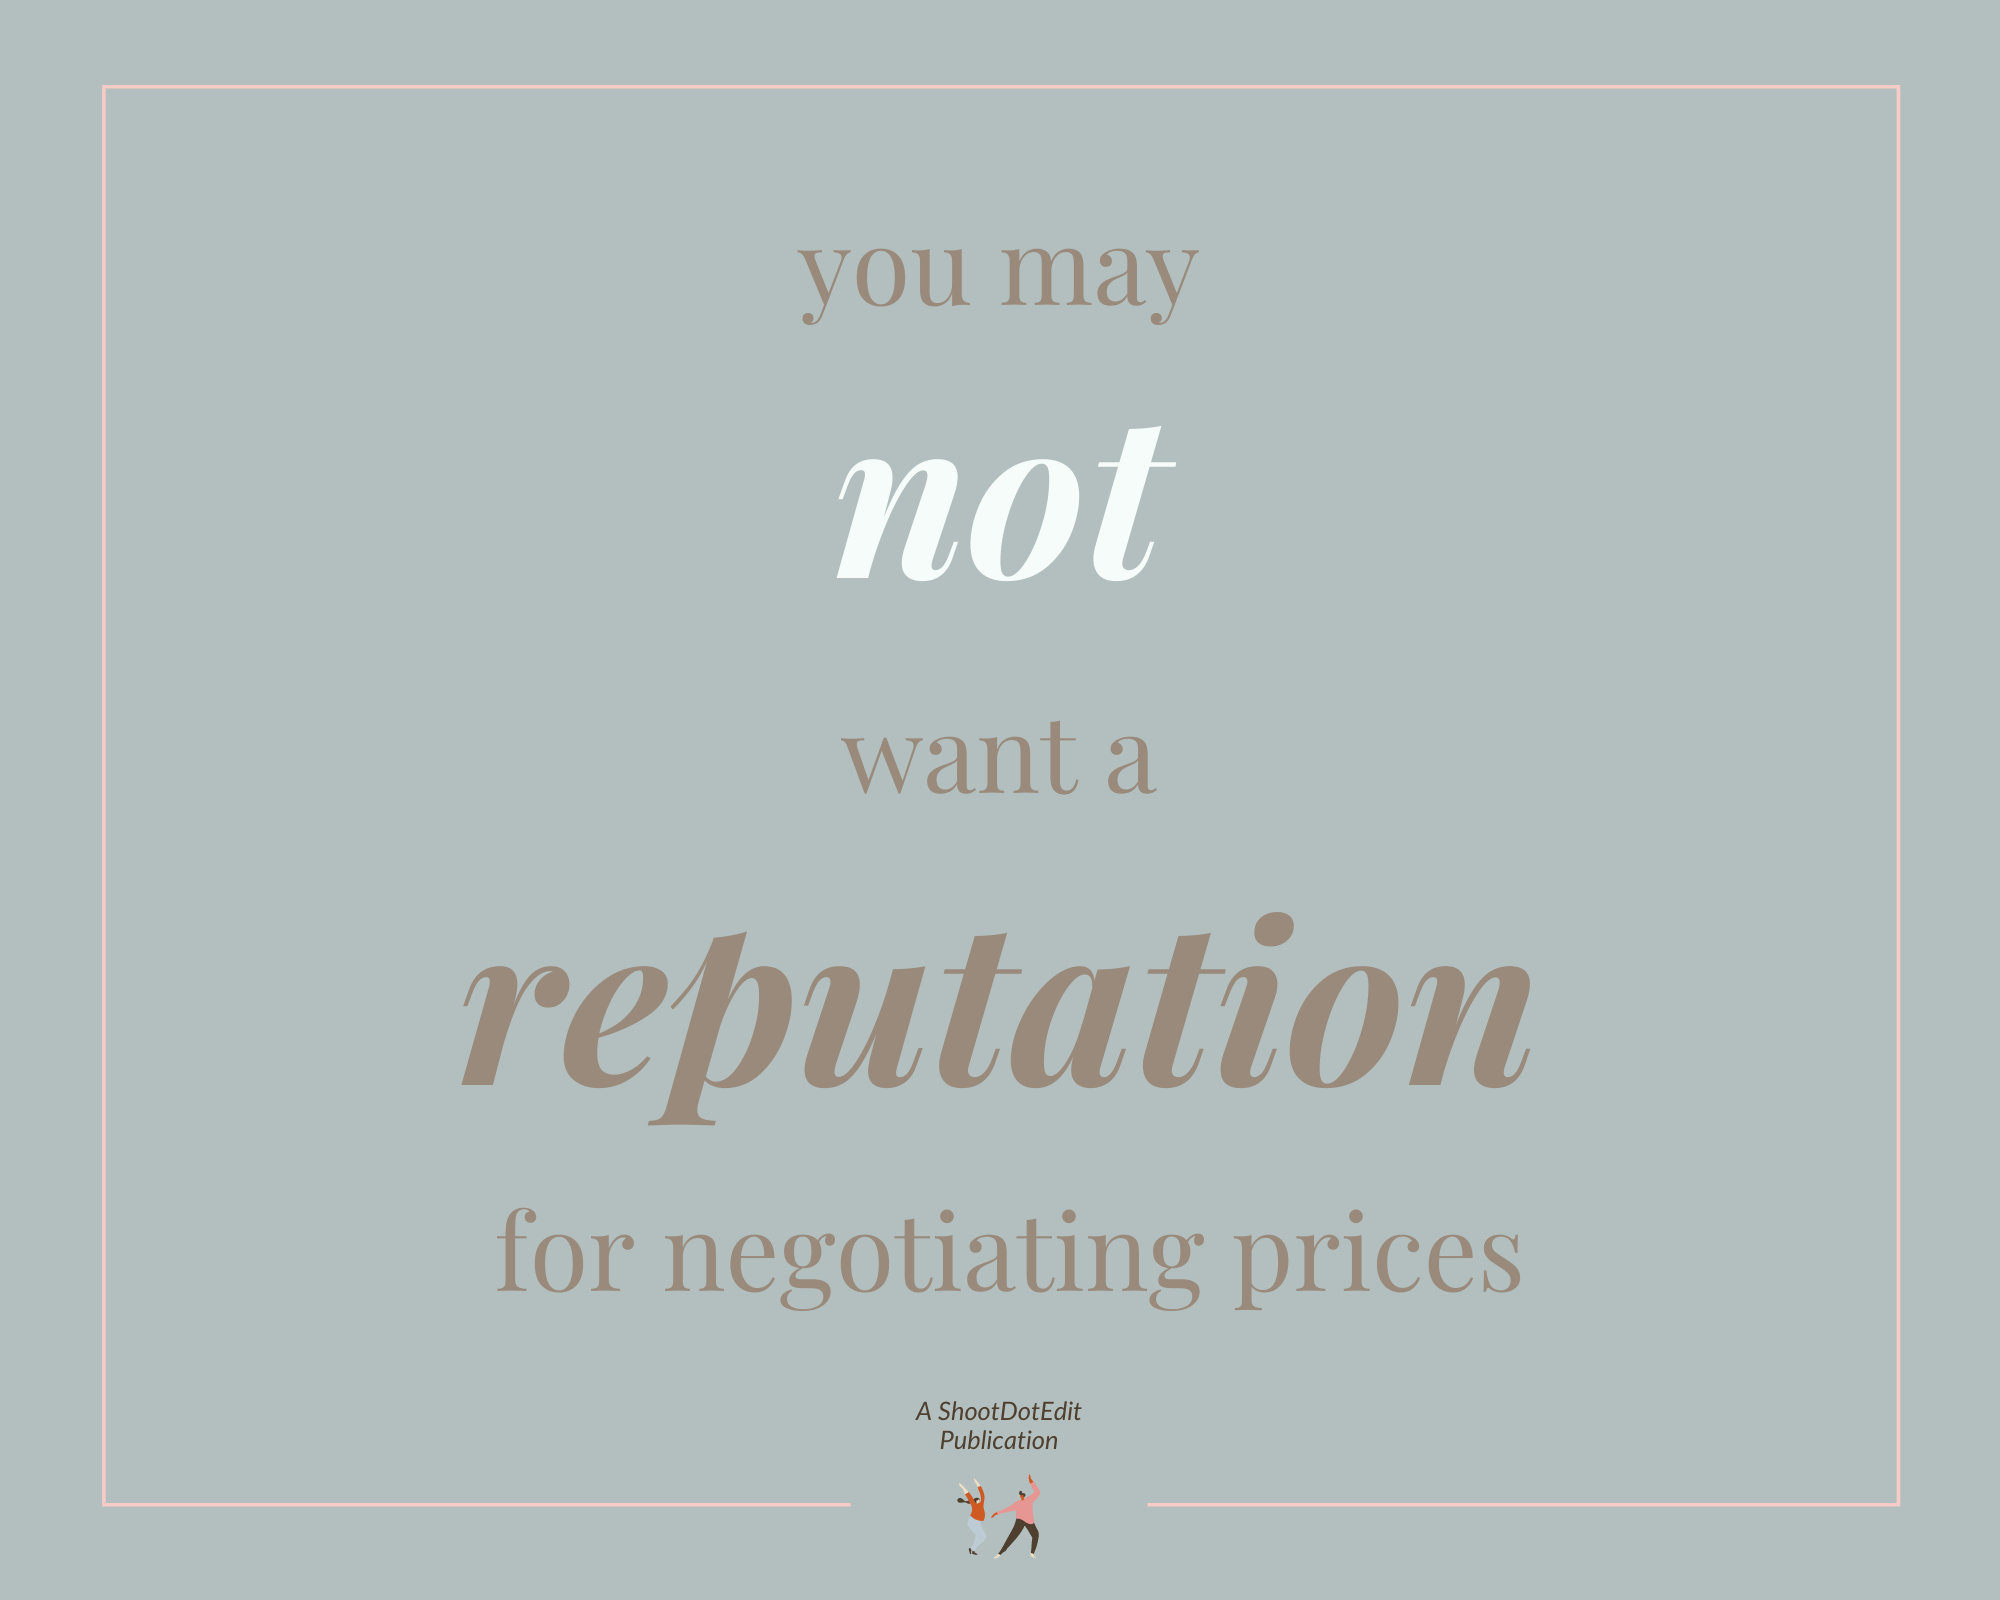 Infographic stating you may not want a reputation for negotiating prices